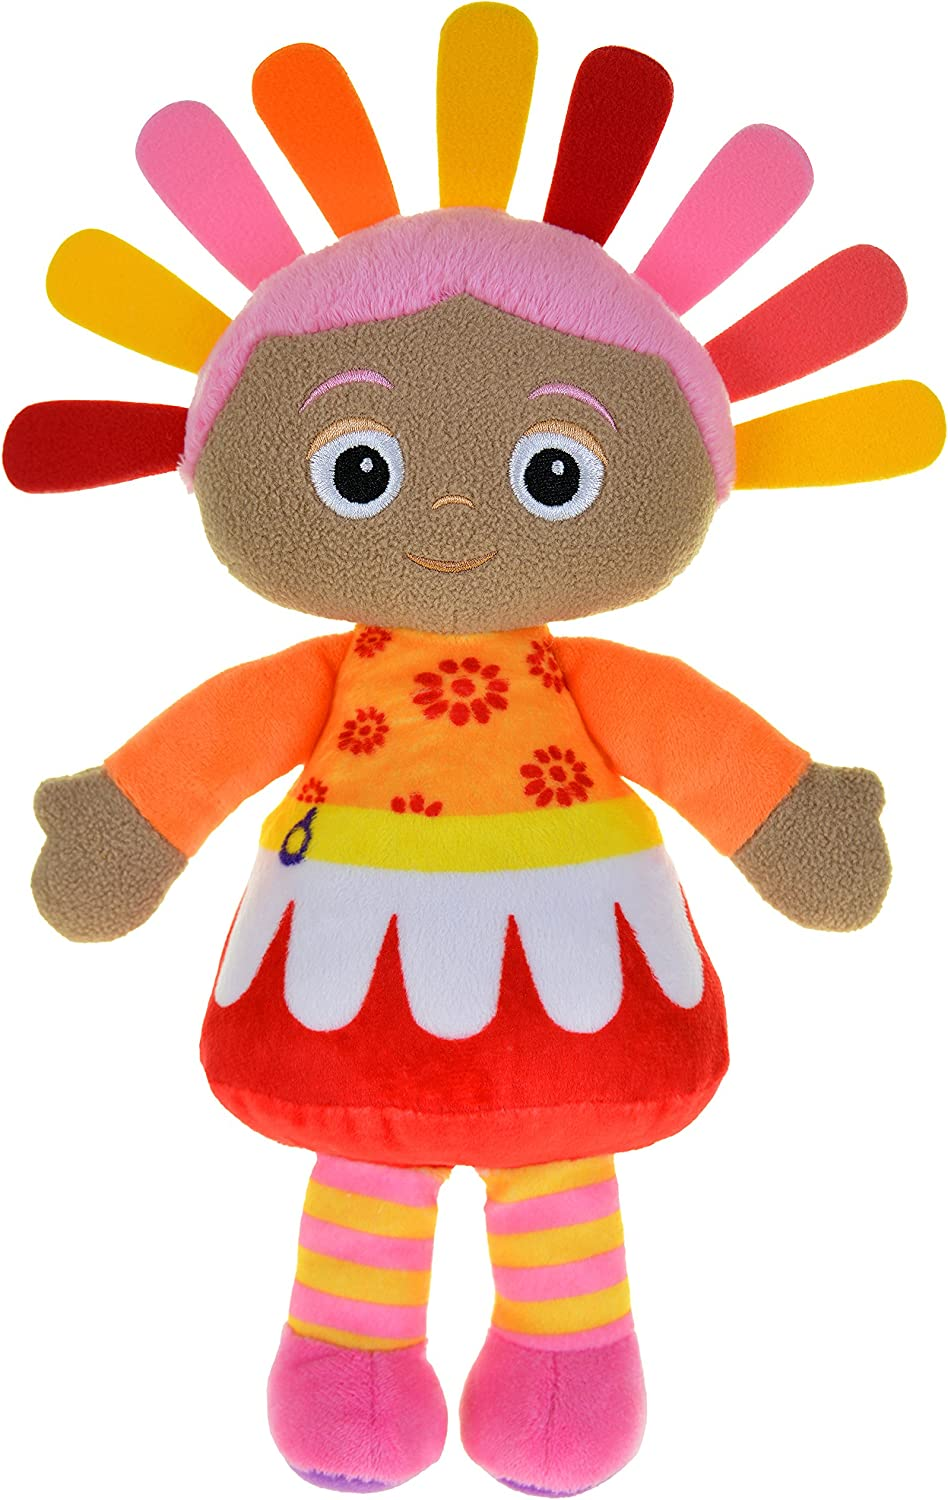 IN THE NIGHT GARDEN Singing Plush Upsy Daisy Toy for Baby and Toddler, Approximately 31cm Tall, 1665